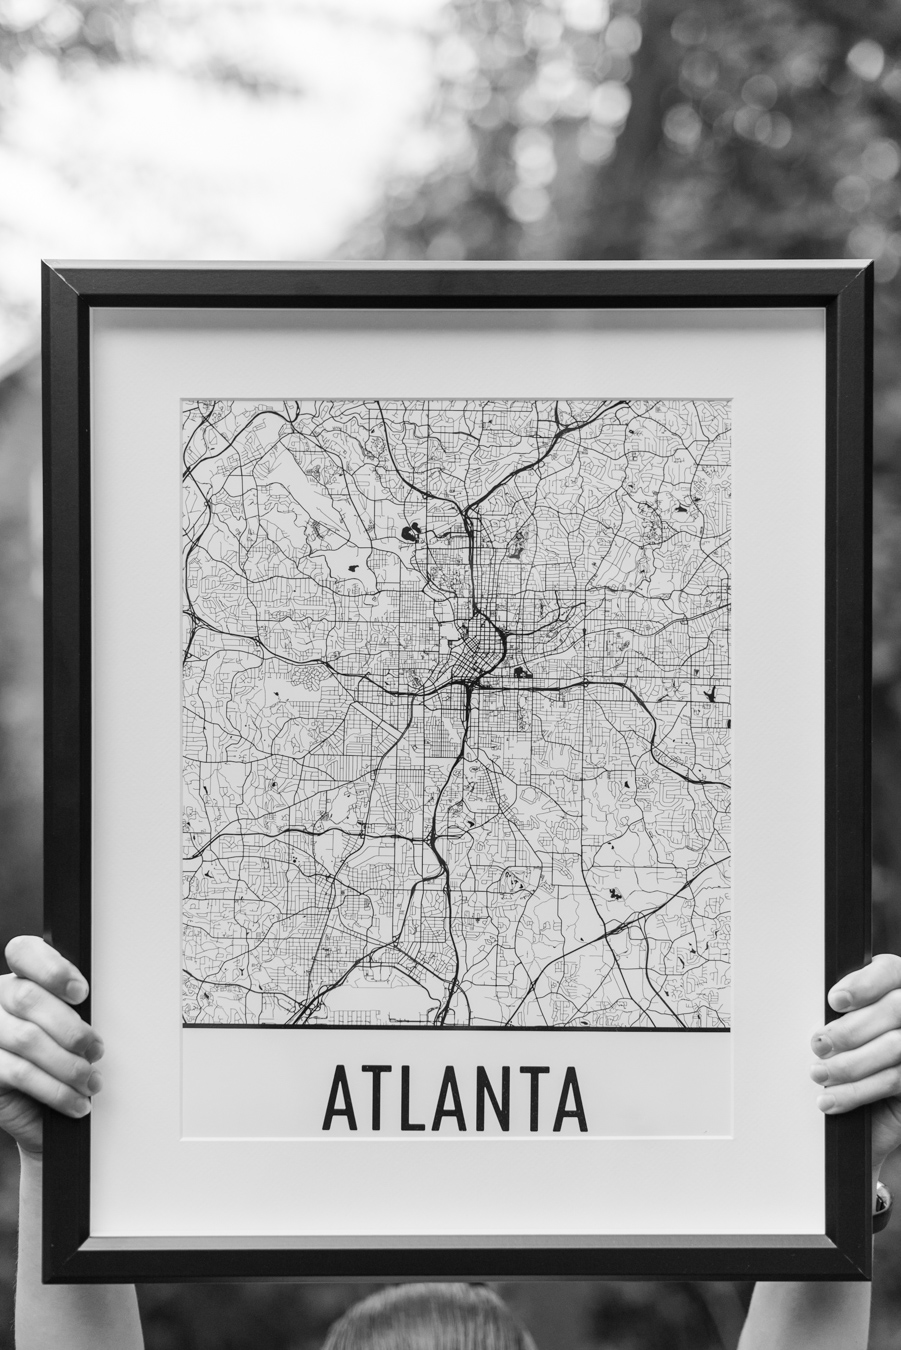 For this specific print -  https://www.modernmapart.com/products/atlanta-street-map-poster